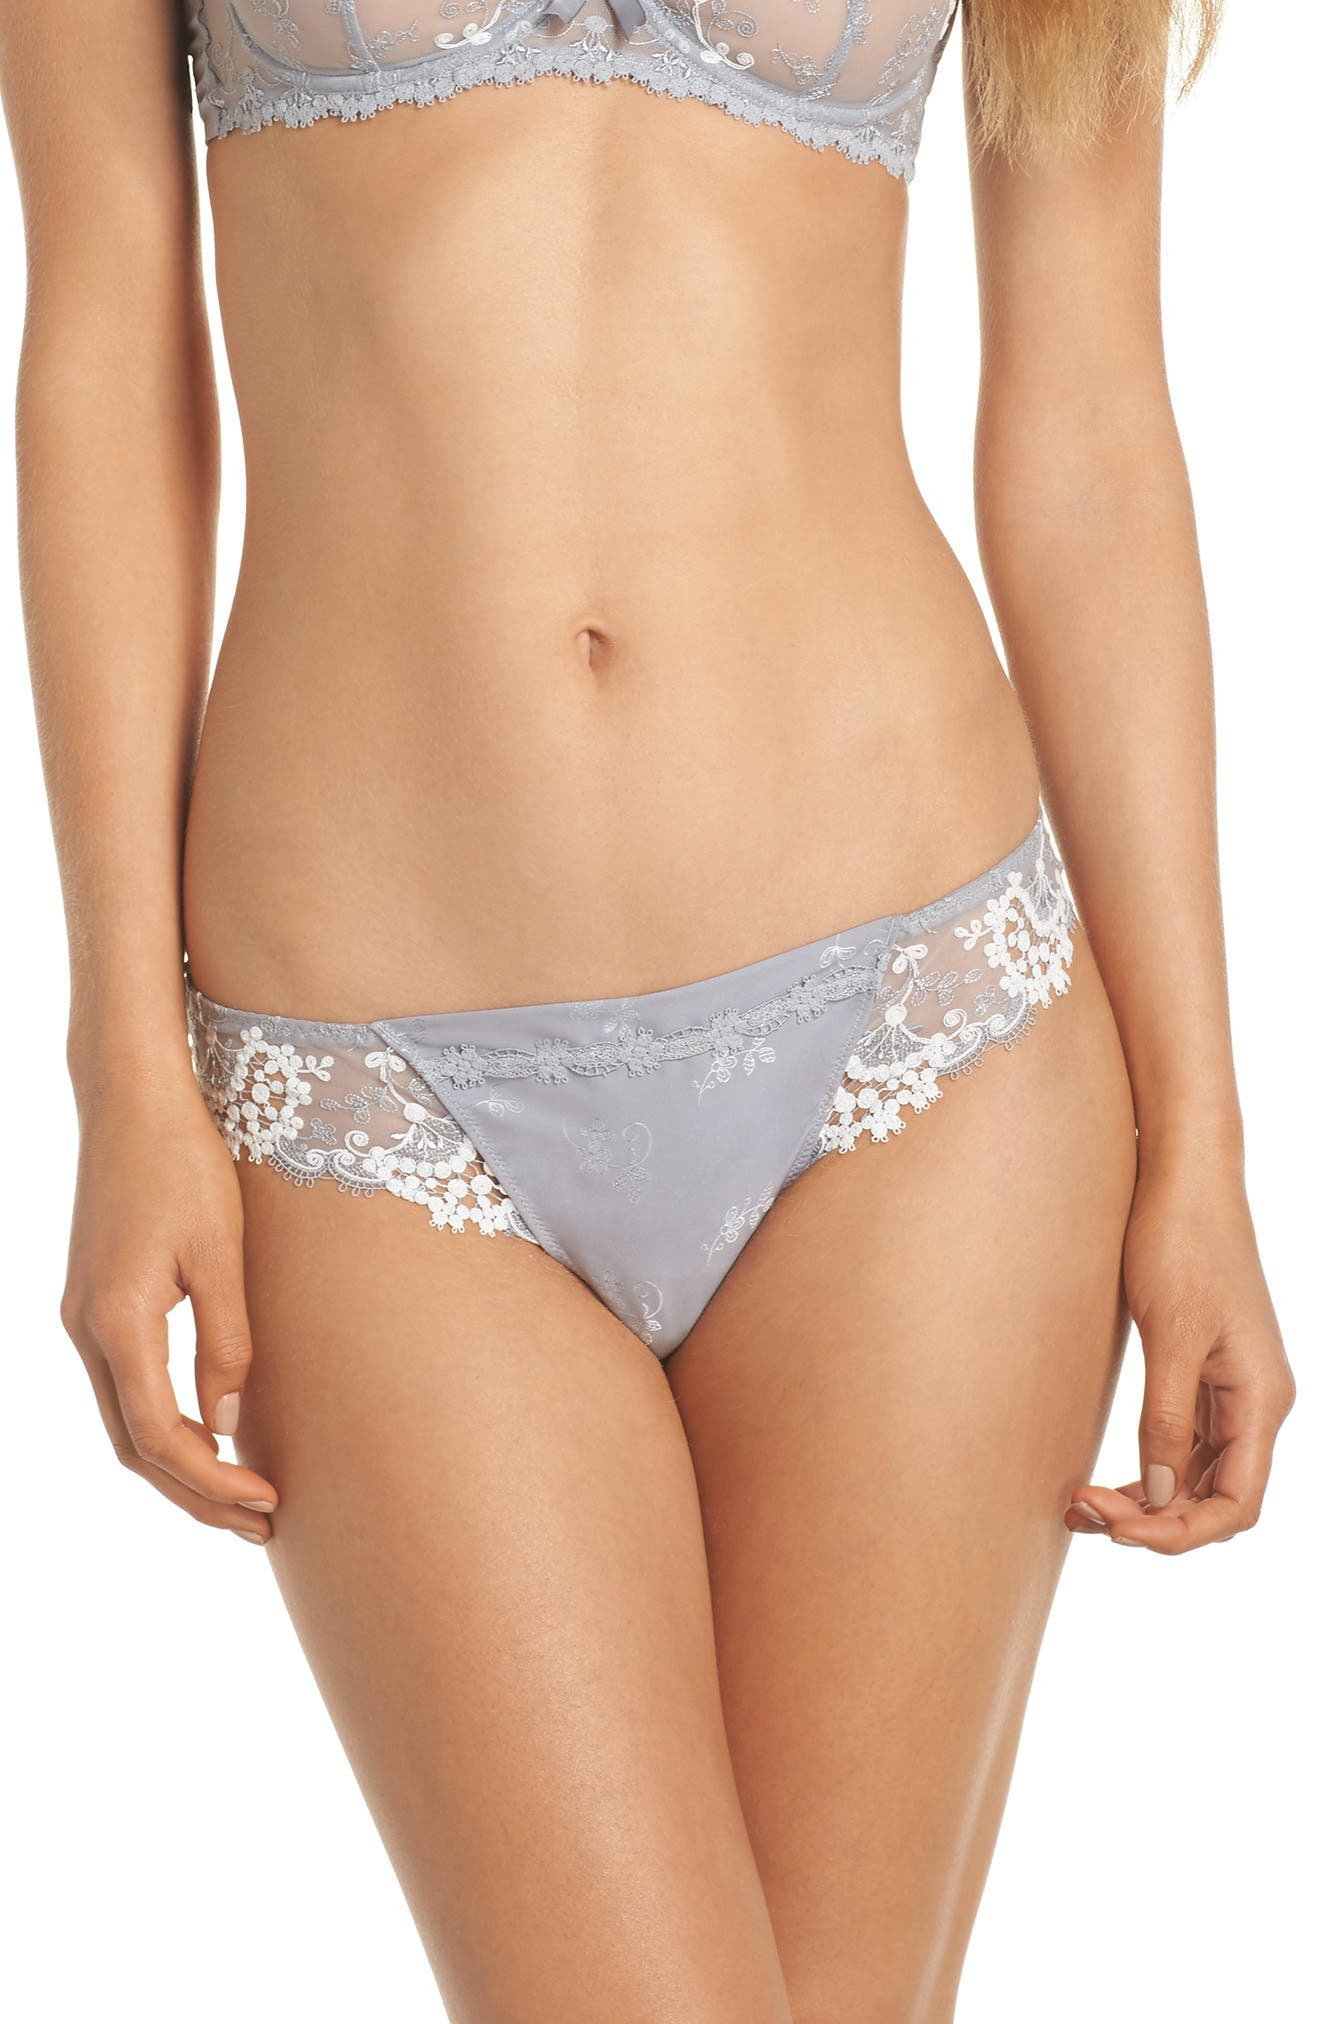 'Wish' Embroidered Tanga Thong,                         Main,                         color, 020